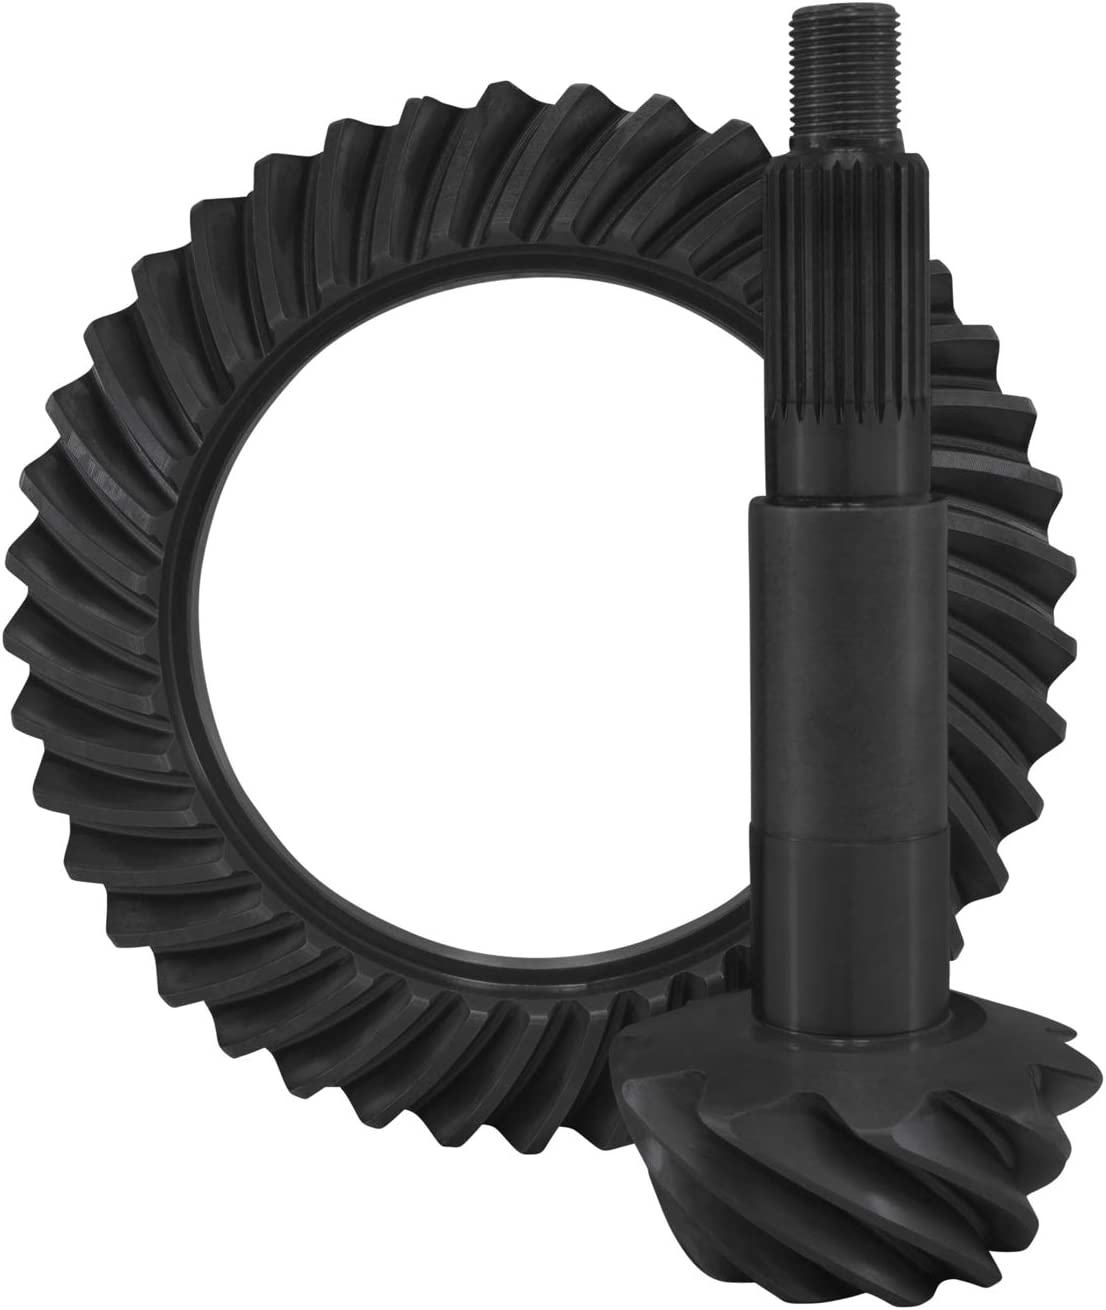 USA Standard Gear ZG D44-456T Replacement Ring /& Pinion Gear Set for Dana 44 Differential